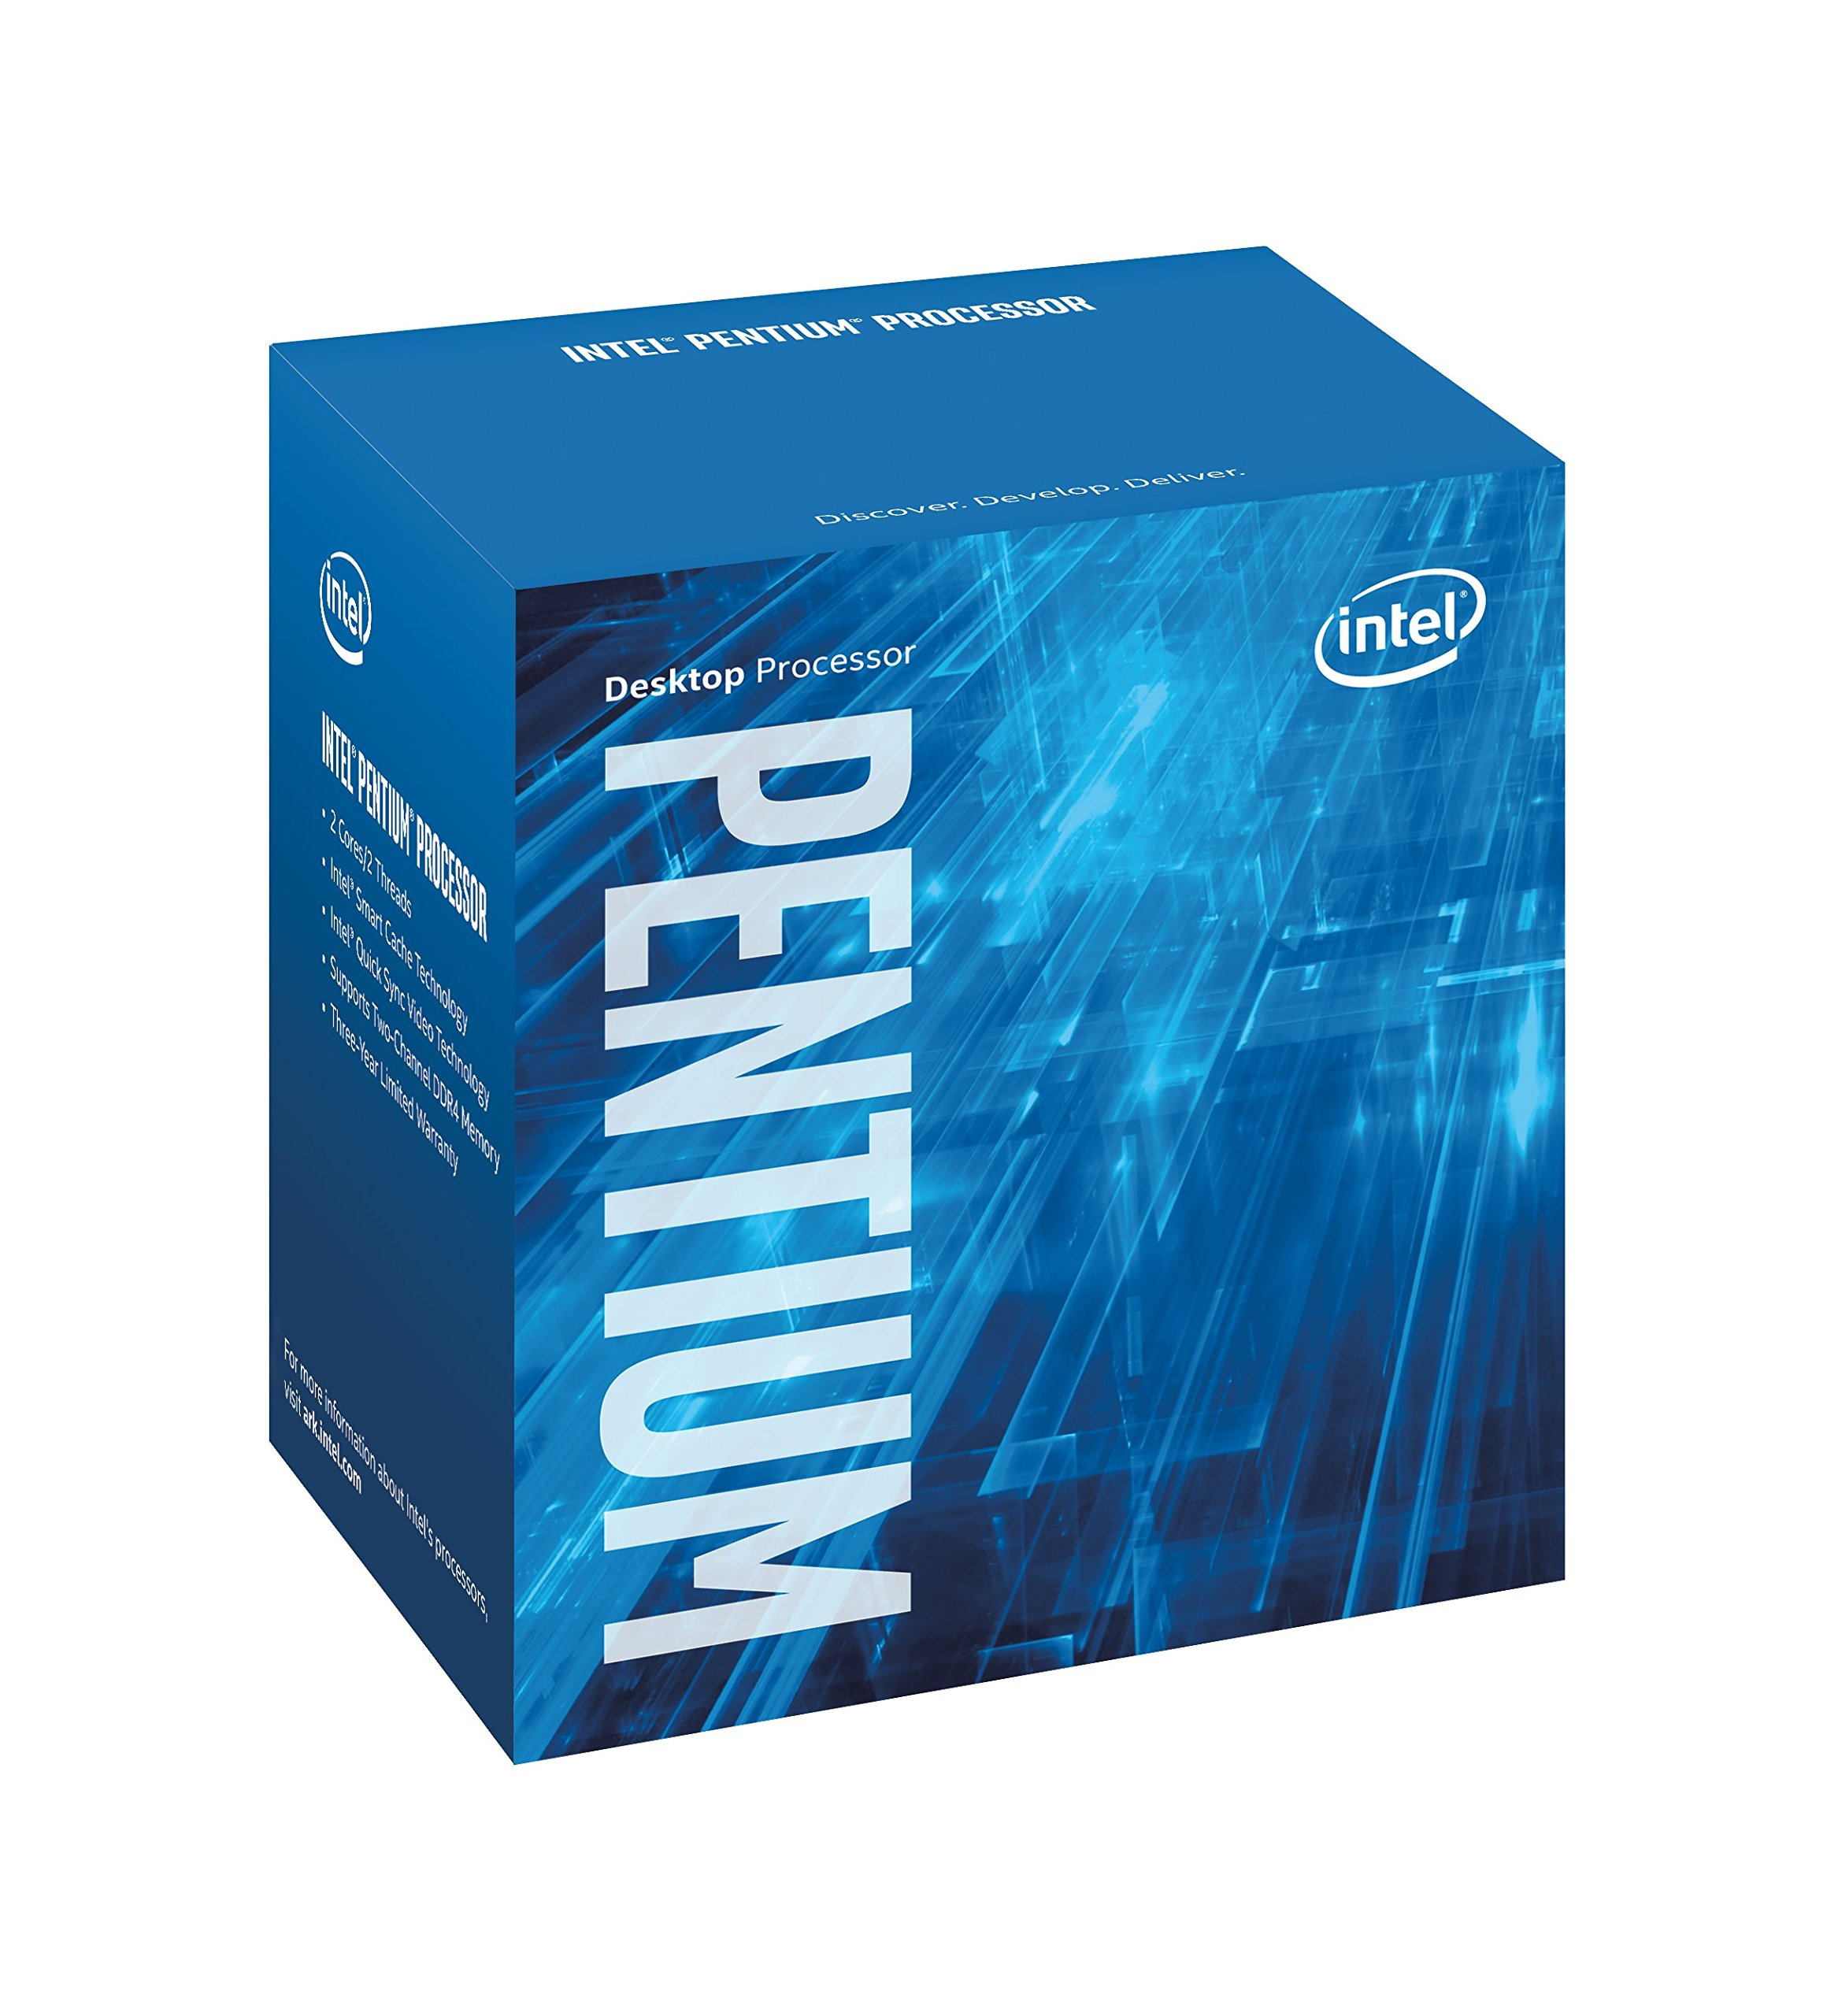 Intel BX80677G4620 7th Gen Pentium Desktop Processors by Intel